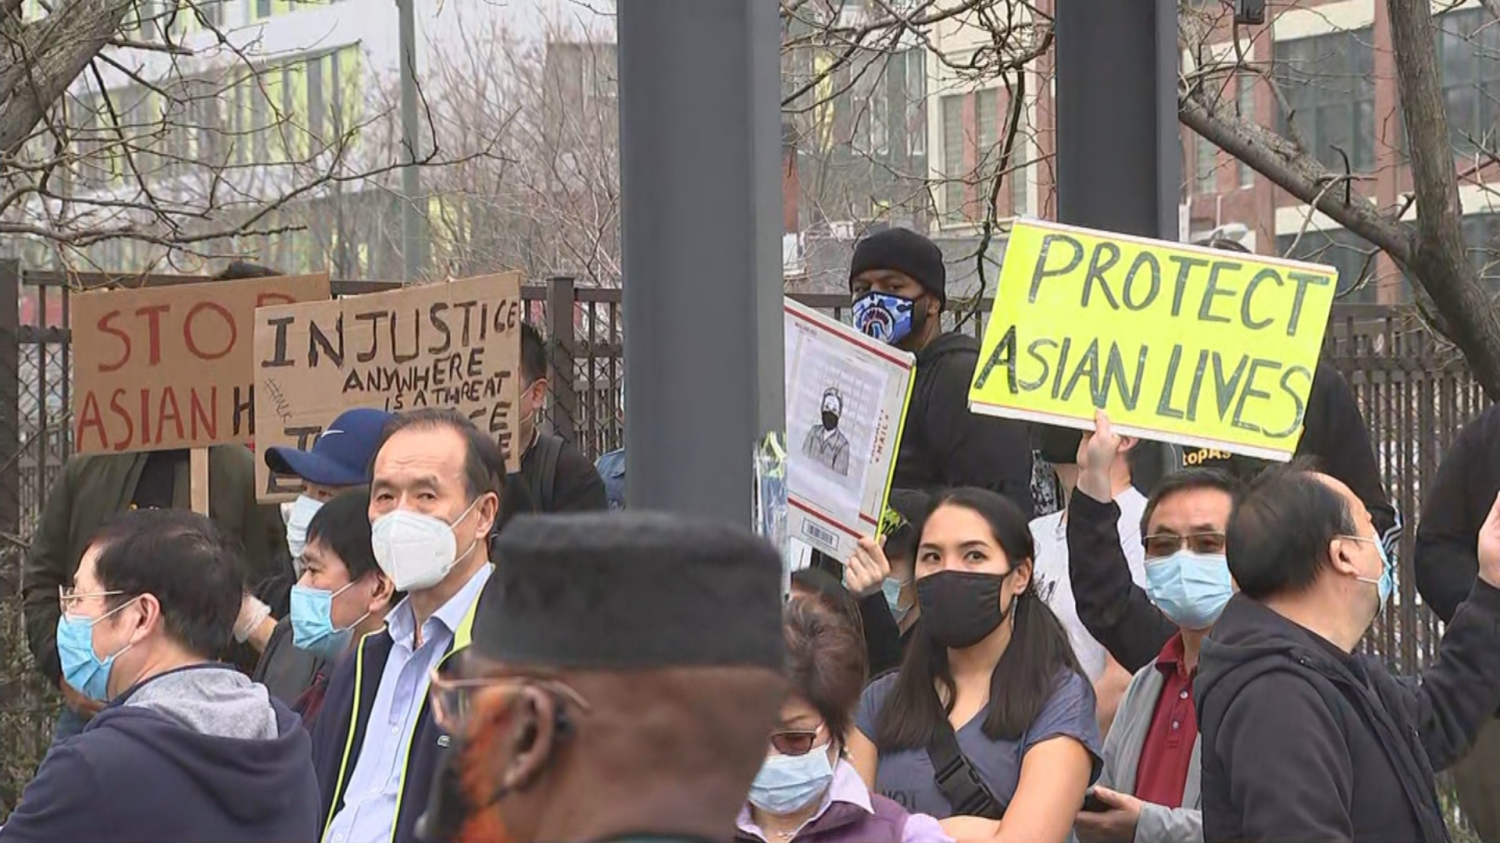 philadelphia.cbslocal.com: Several Hundred People March To Philadelphia City Hall, Urging Lawmakers To Protect Asian-Americans